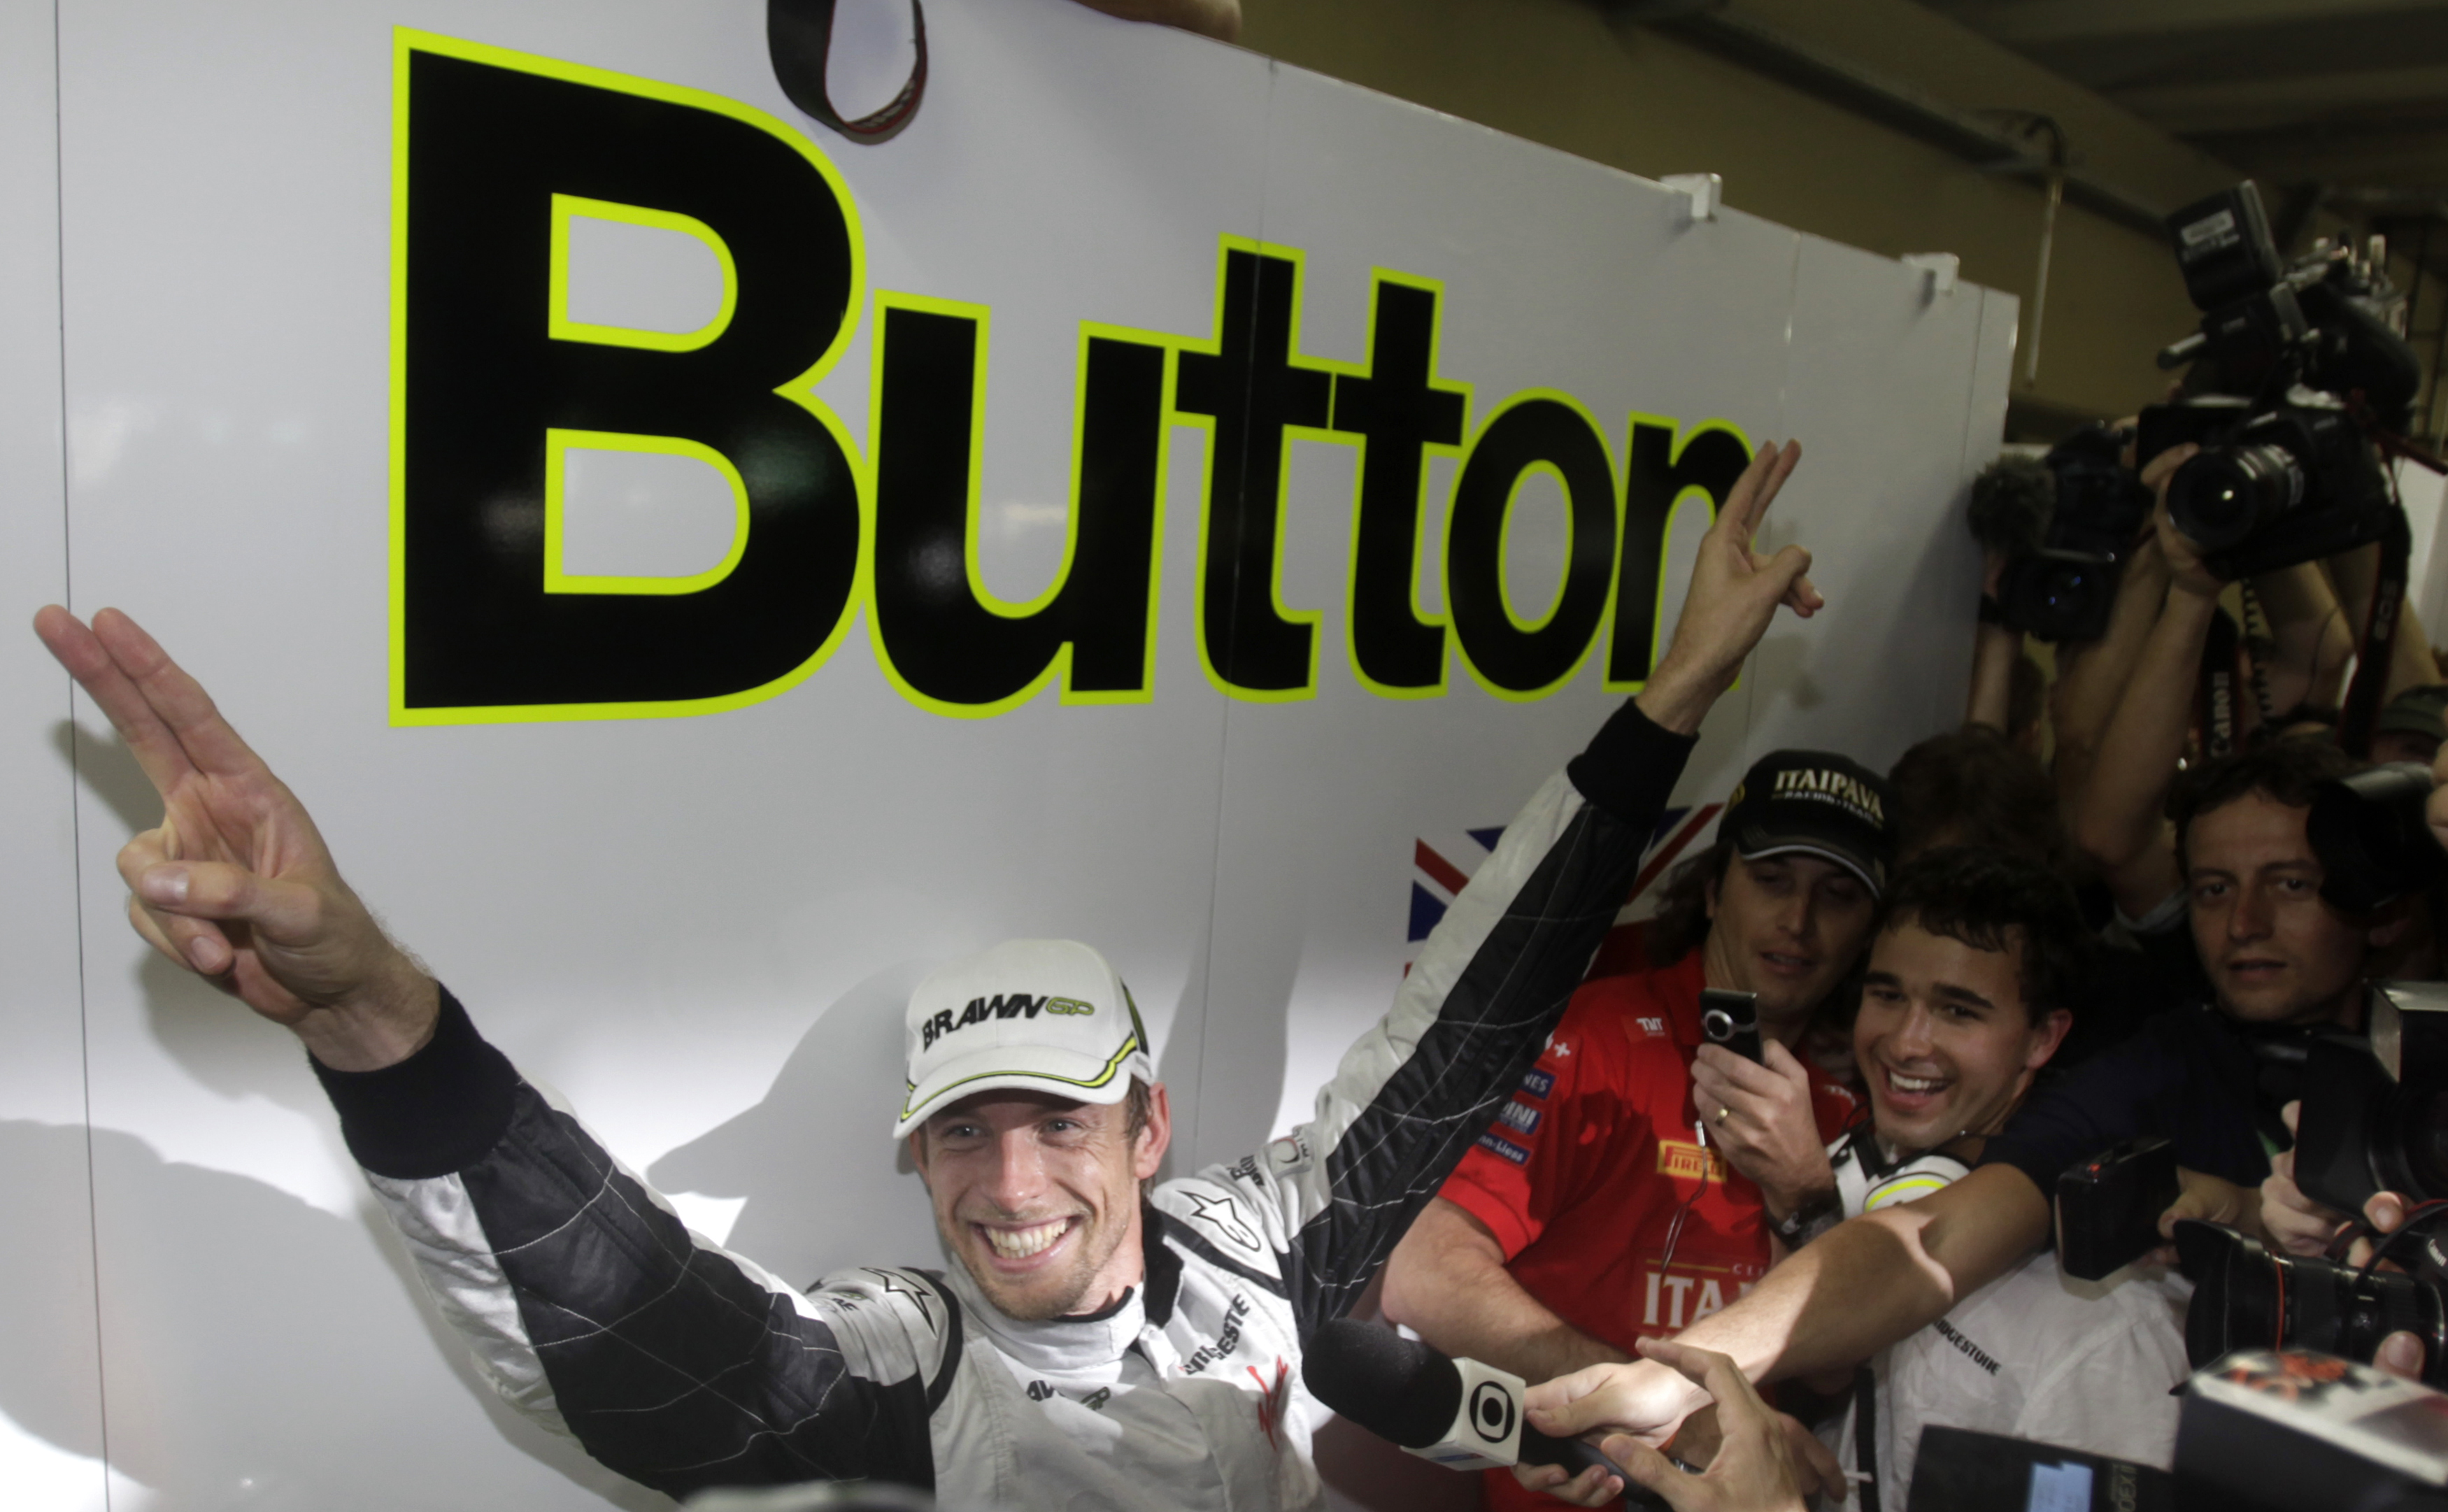 Jenson Button celebrates after becoming the 2009 Formula One World Champion (Reuters)